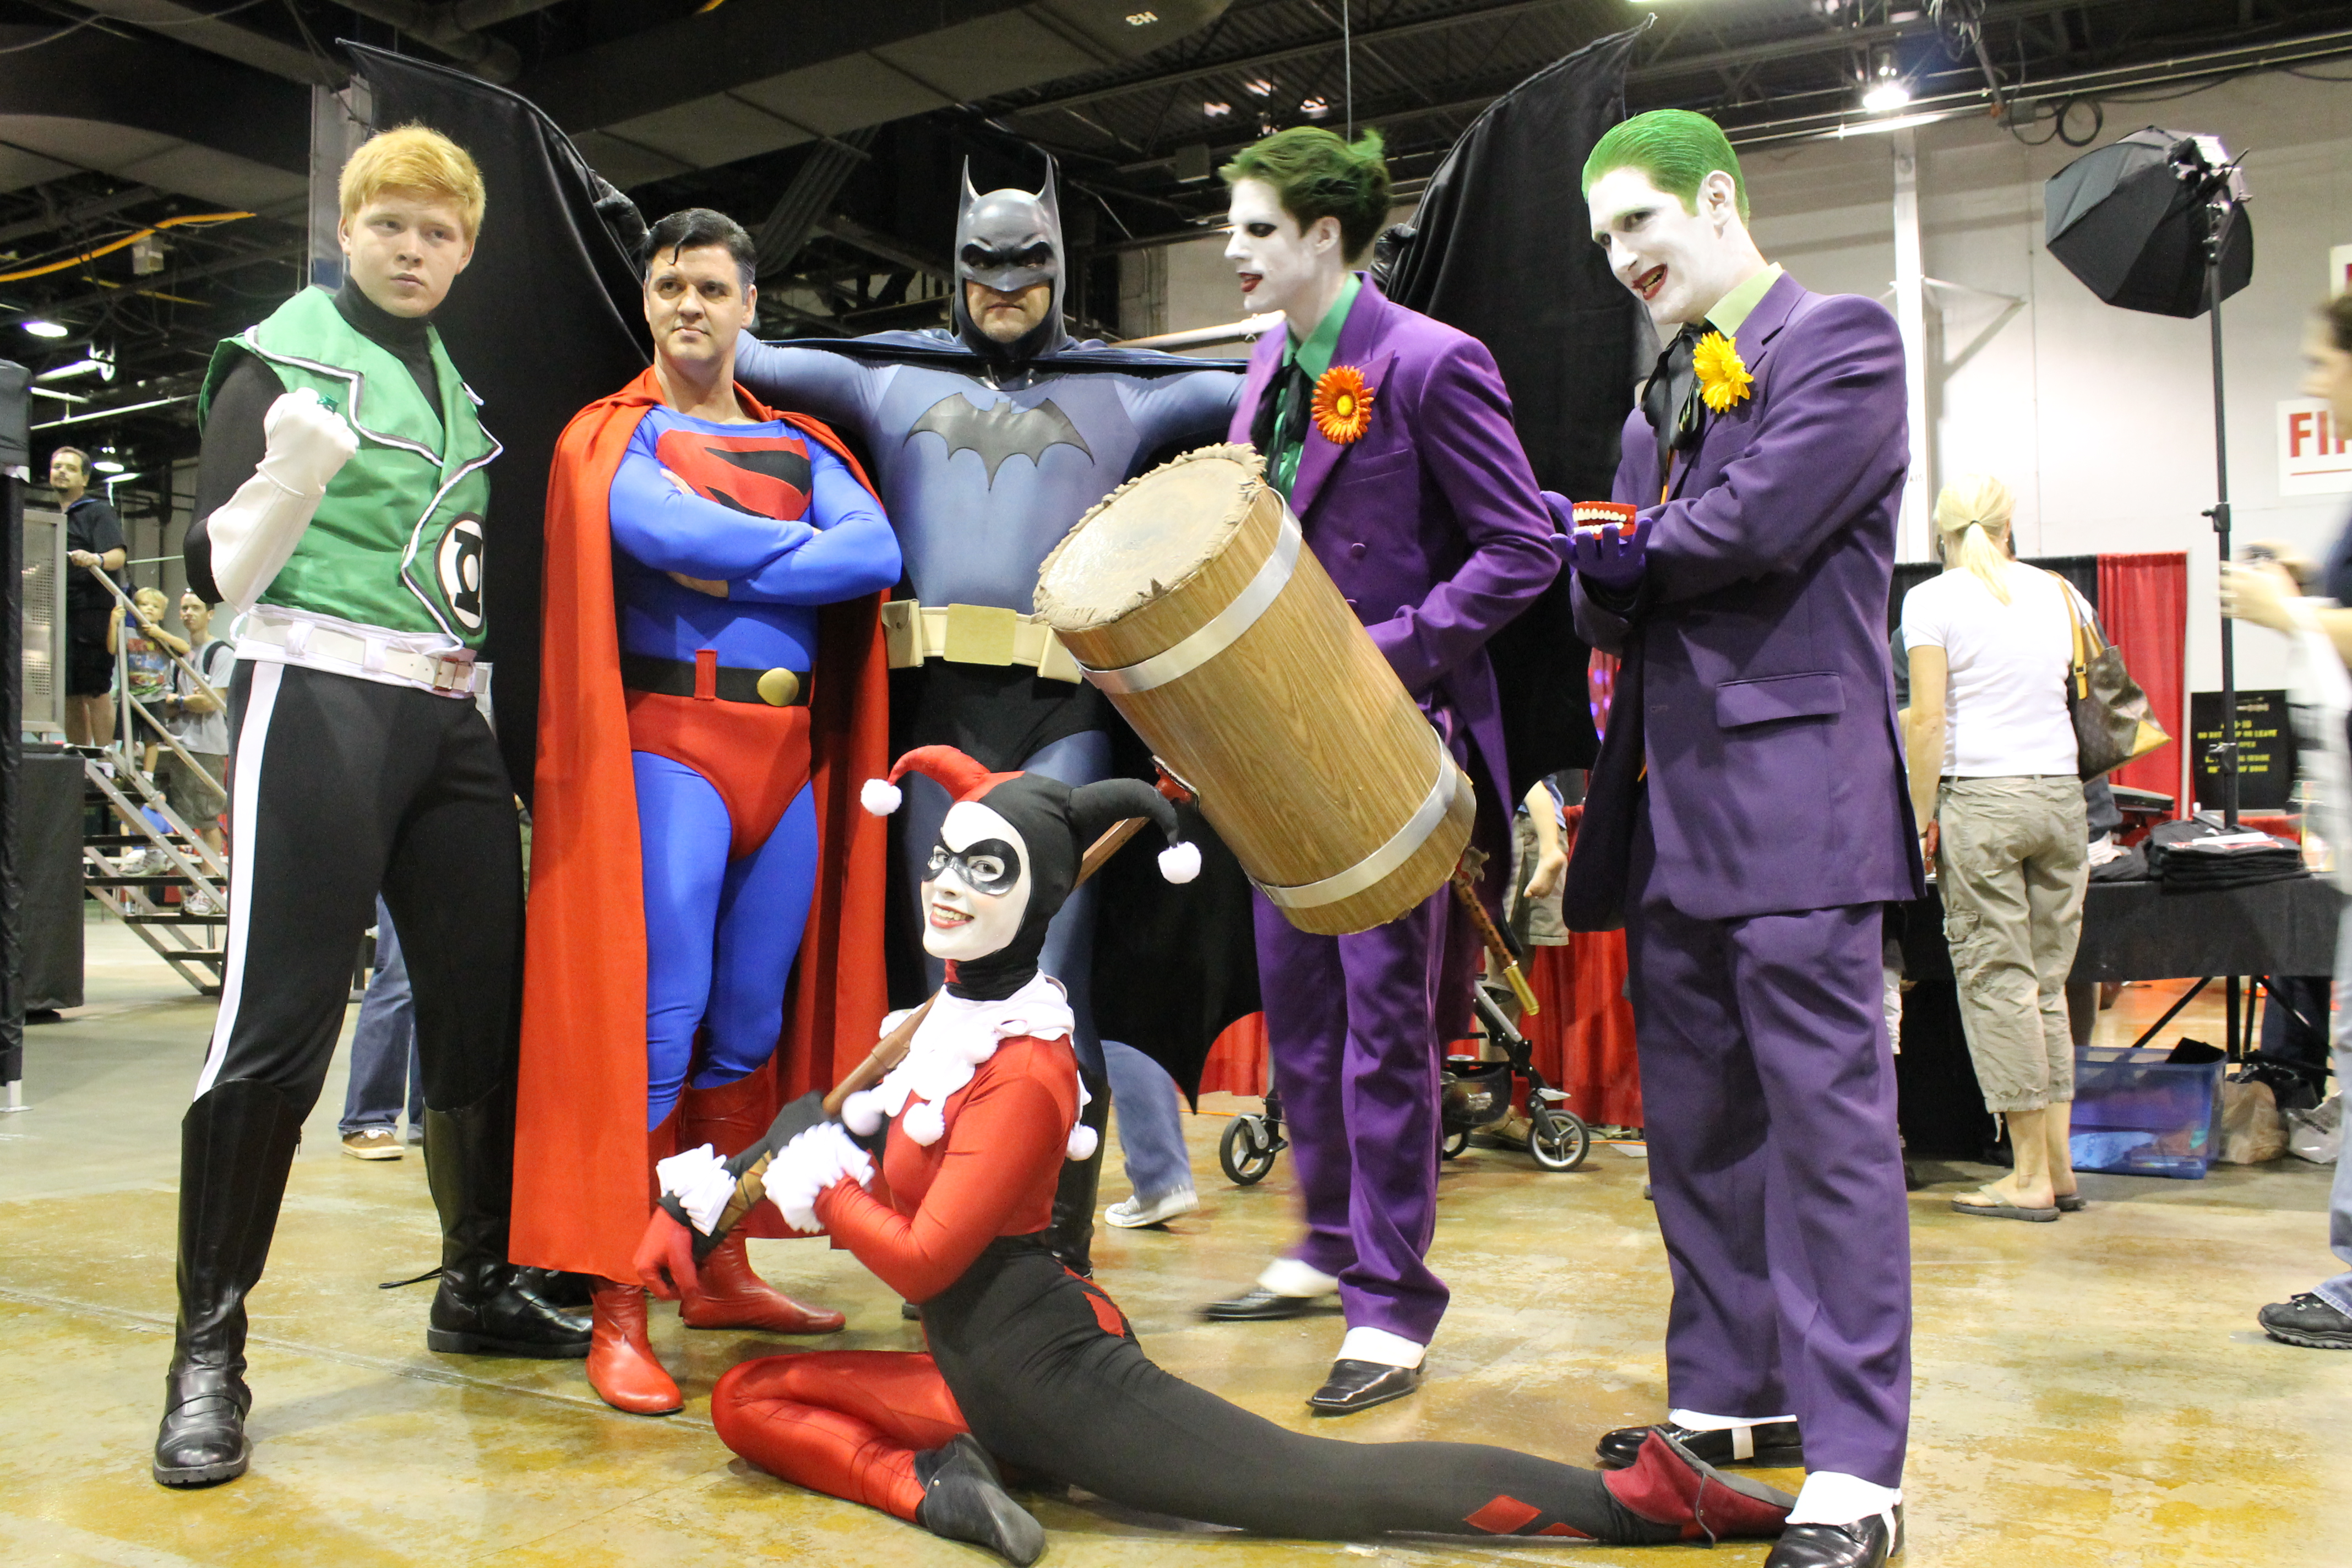 comic con speed dating chicago It's hard out there for a geek, especially when it comes to finding a date, but thanks to events like sci-fi speed dating, comic-book and video game enthusiasts actually have a chance of finding a.